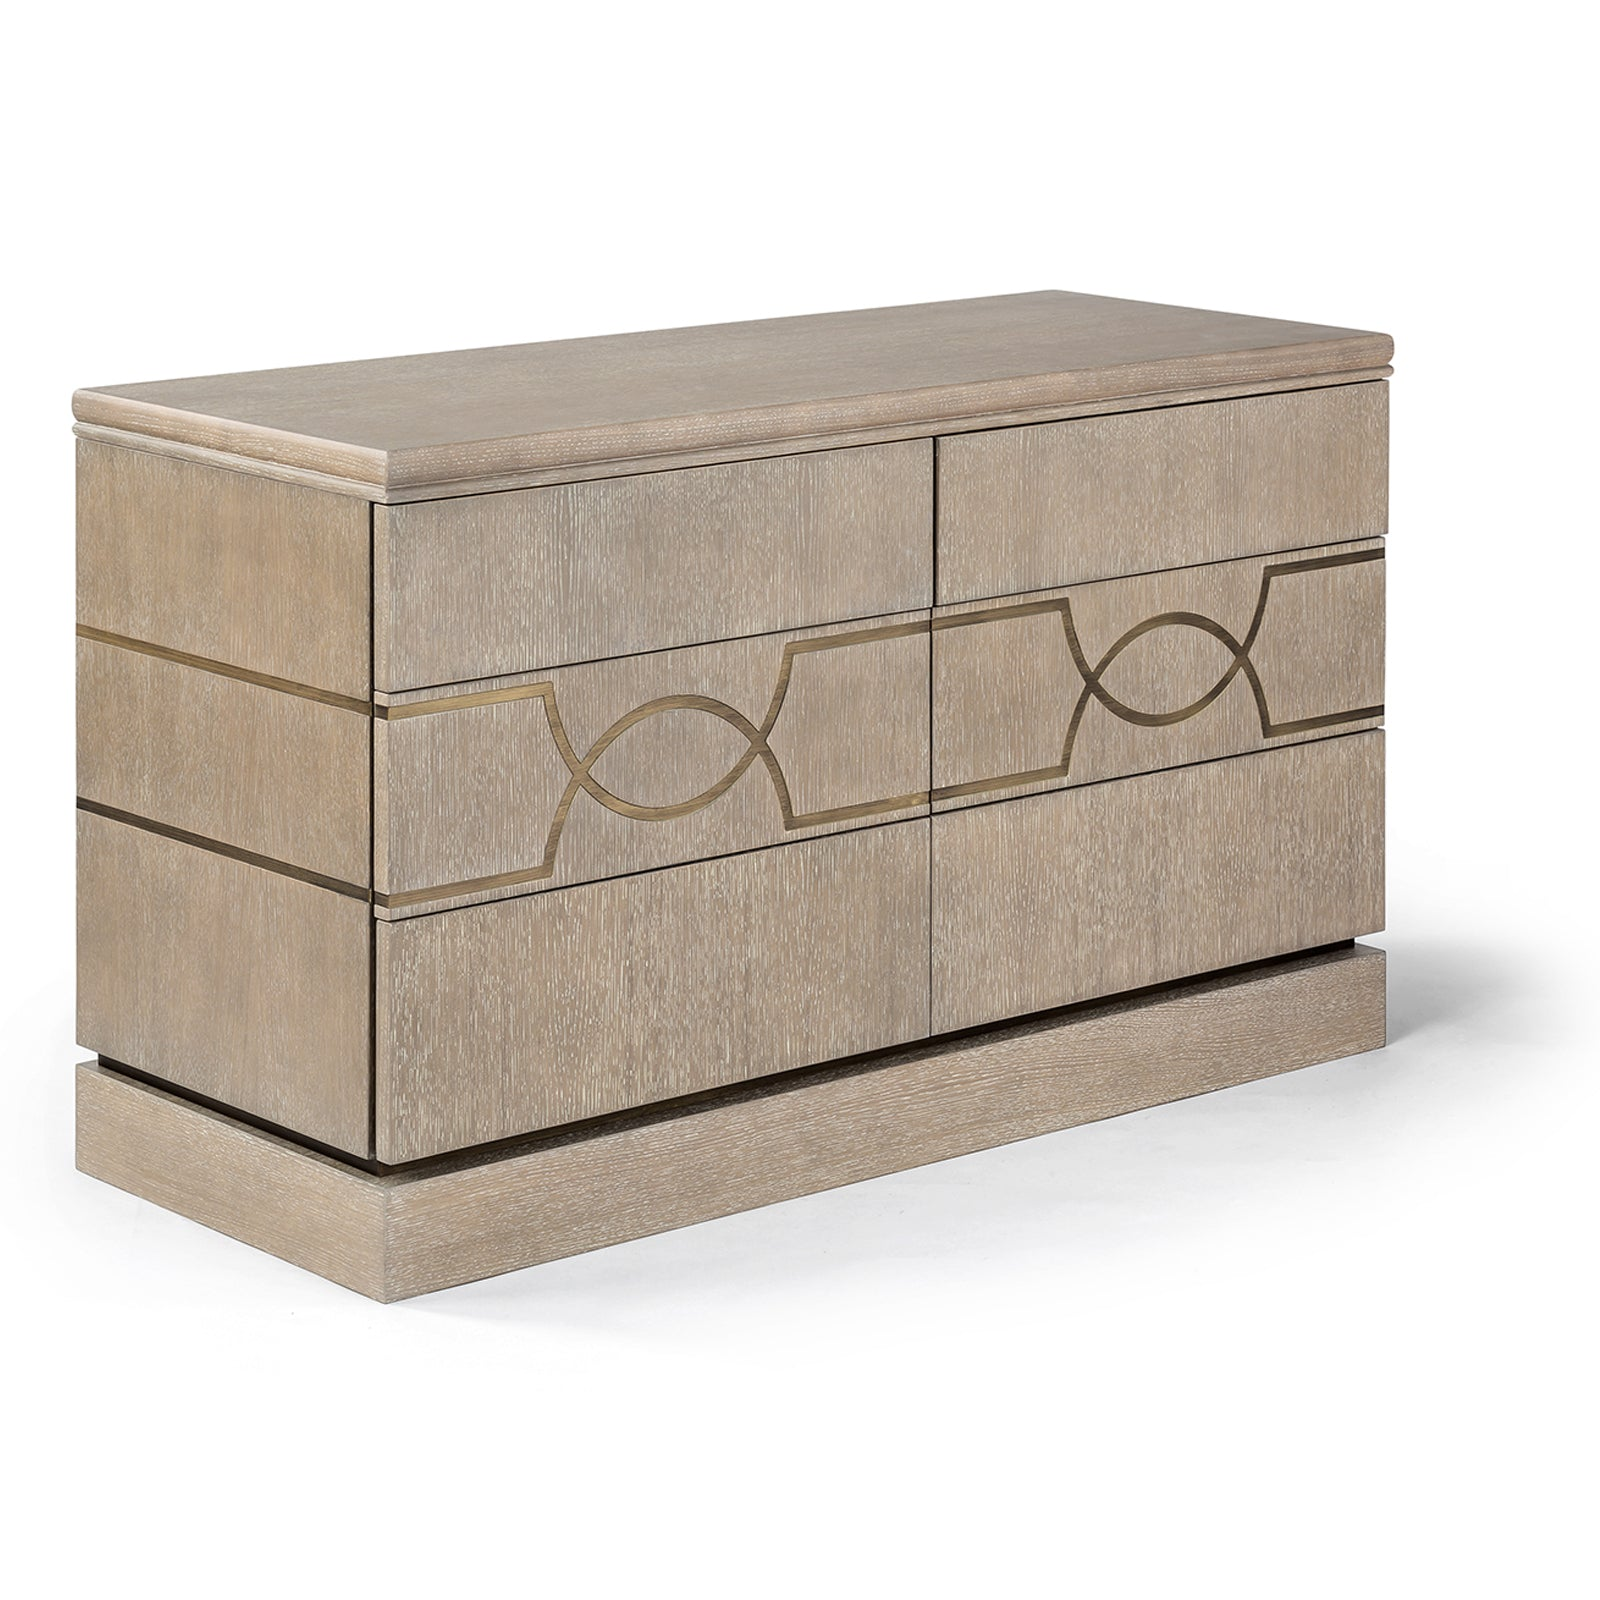 Ascot Chest of Drawers